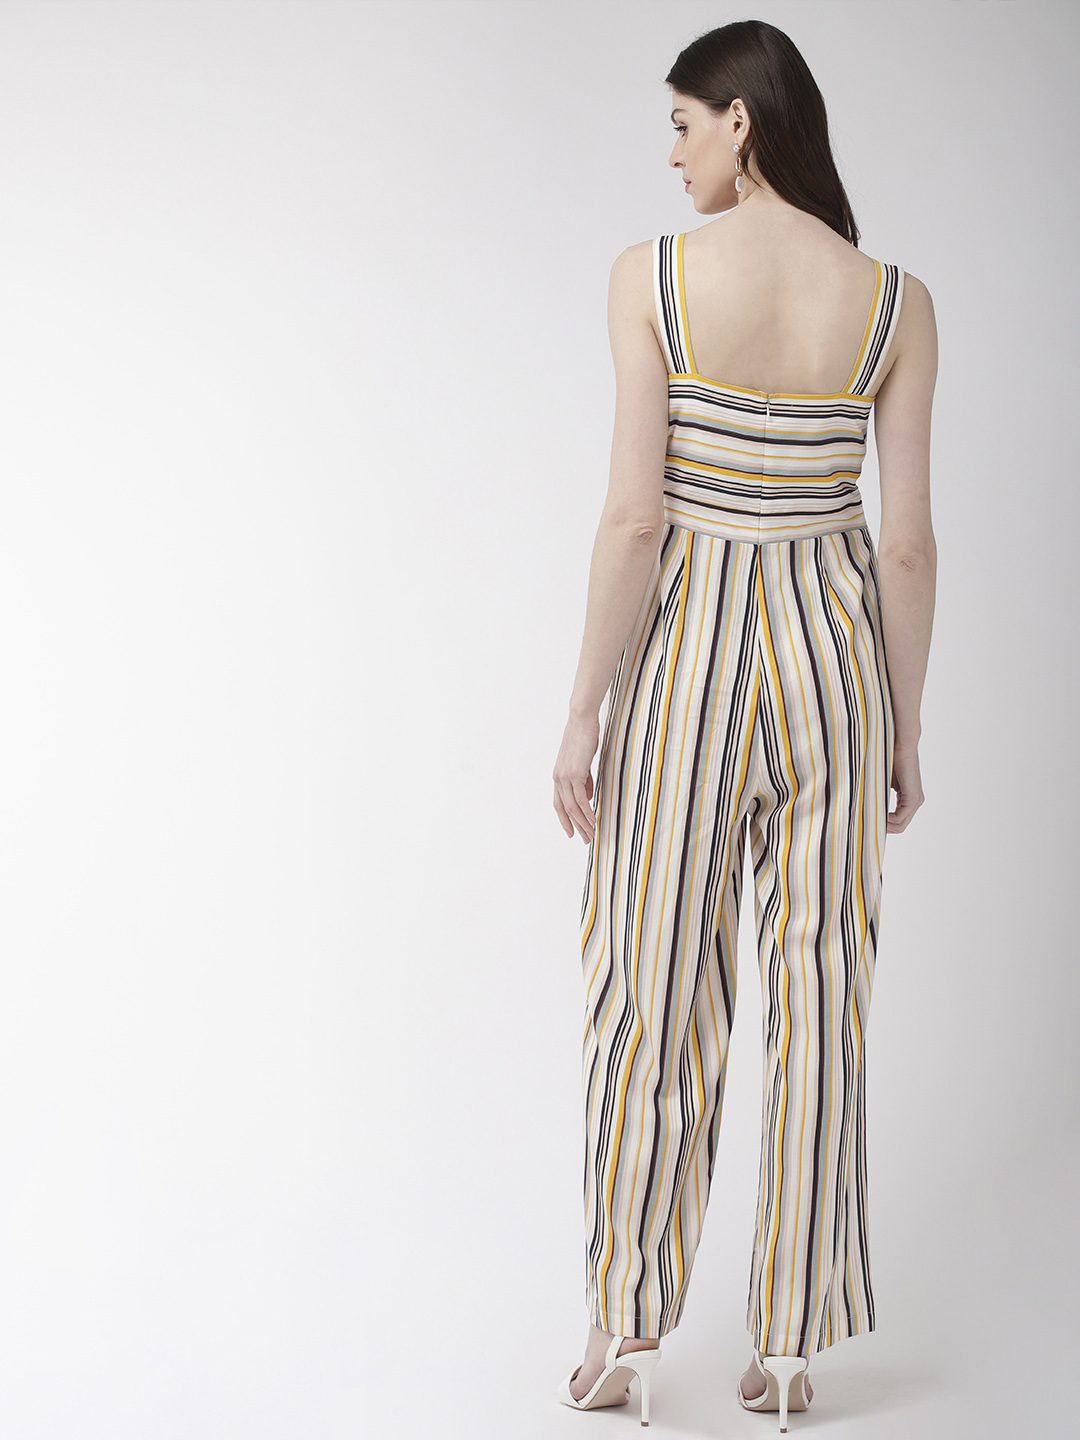 Jumpsuits-The Girl In The Striped Jumpsuit3